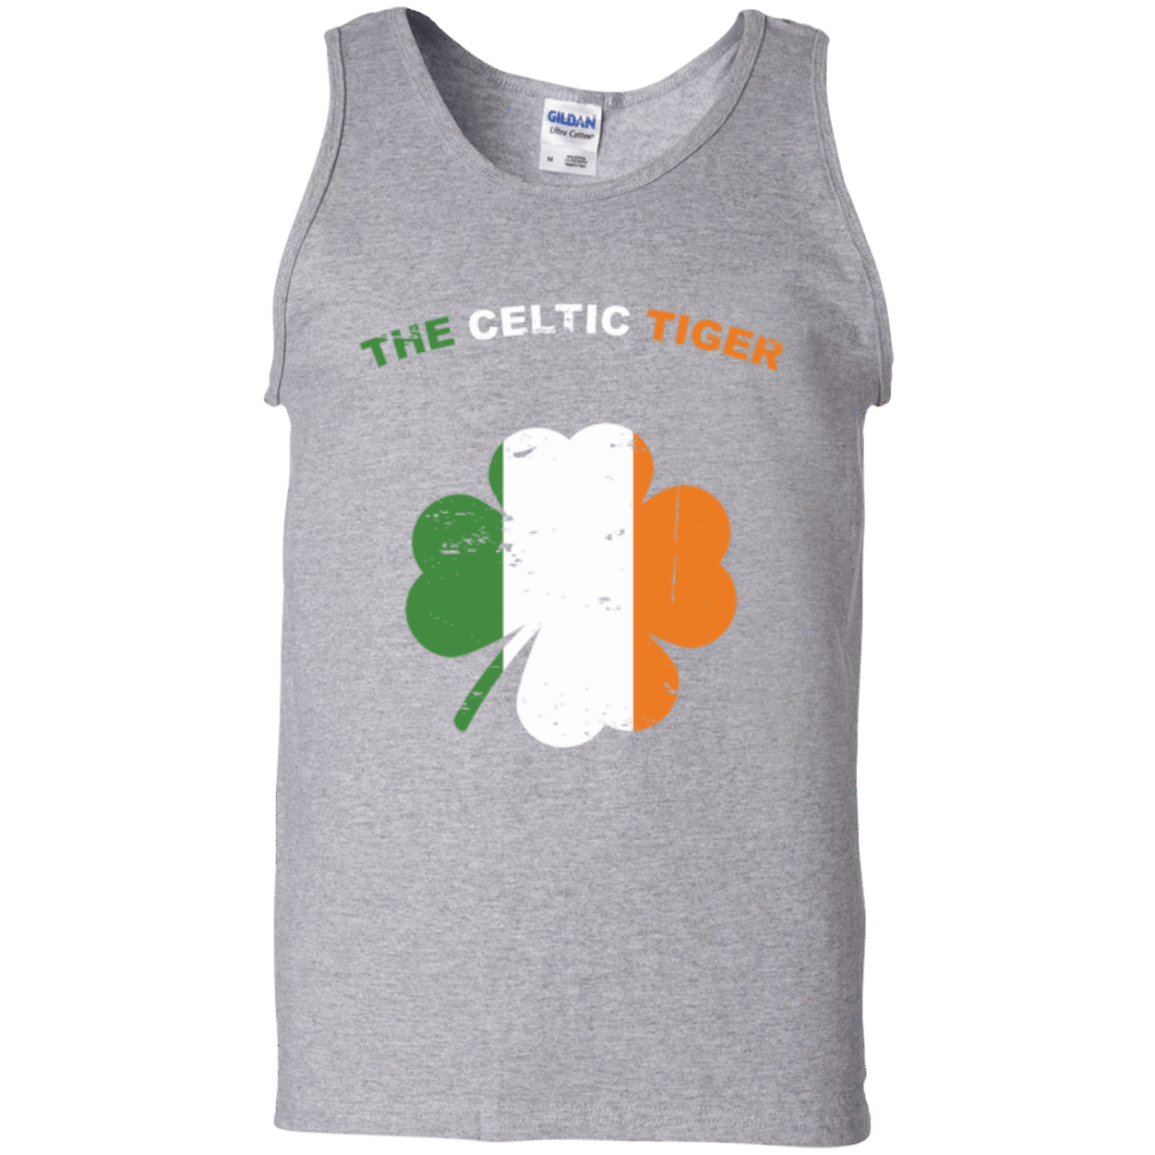 e43b328e7 The Celtic Tiger Cotton Tank Top - Jersey Champs - Custom Basketball